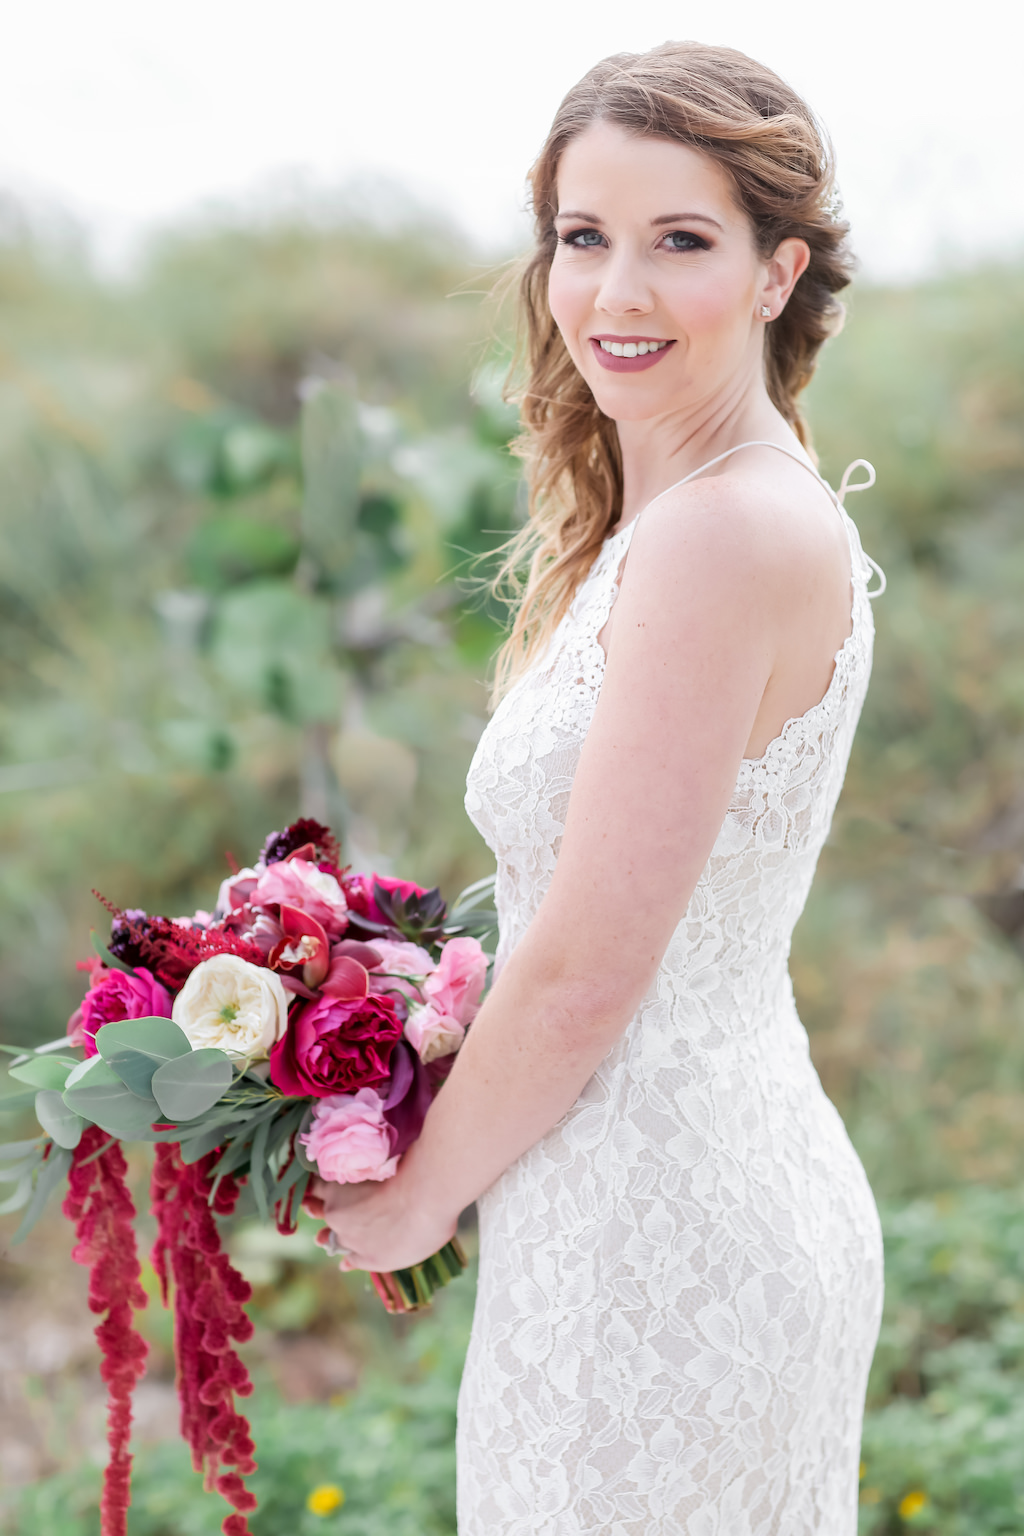 Florida Bride Wedding Portrait in Fitted Lace Halter Strap BHLDN Wedding Dress with Jewel Tone, Purple, Plum, Pink, White, and Greenery Organic Bridal Bouquet | Tampa Bay Wedding Photographer Lifelong Photography Studios | Hair and Makeup Artist Femme Akoi